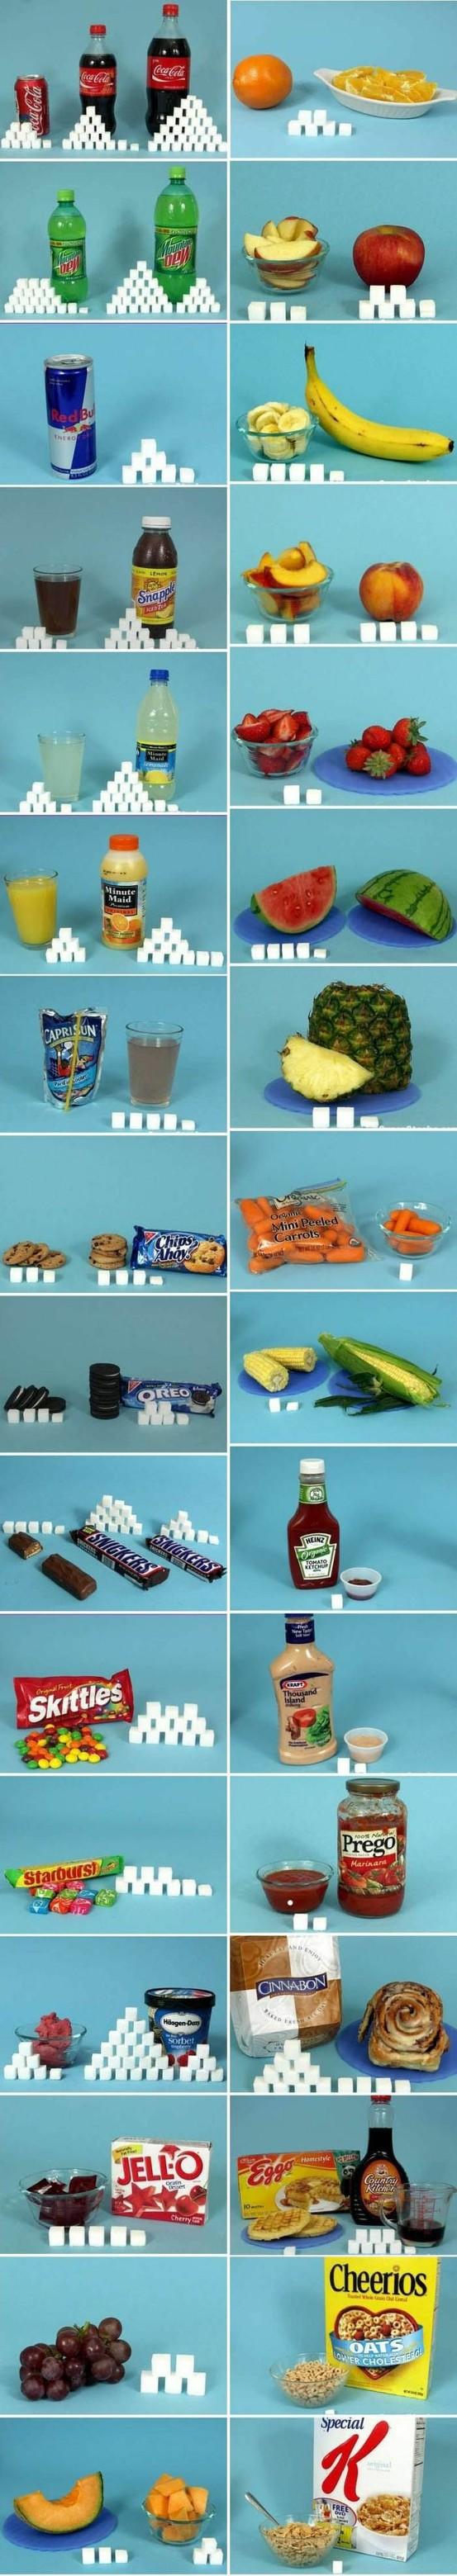 How much sugar are you having?